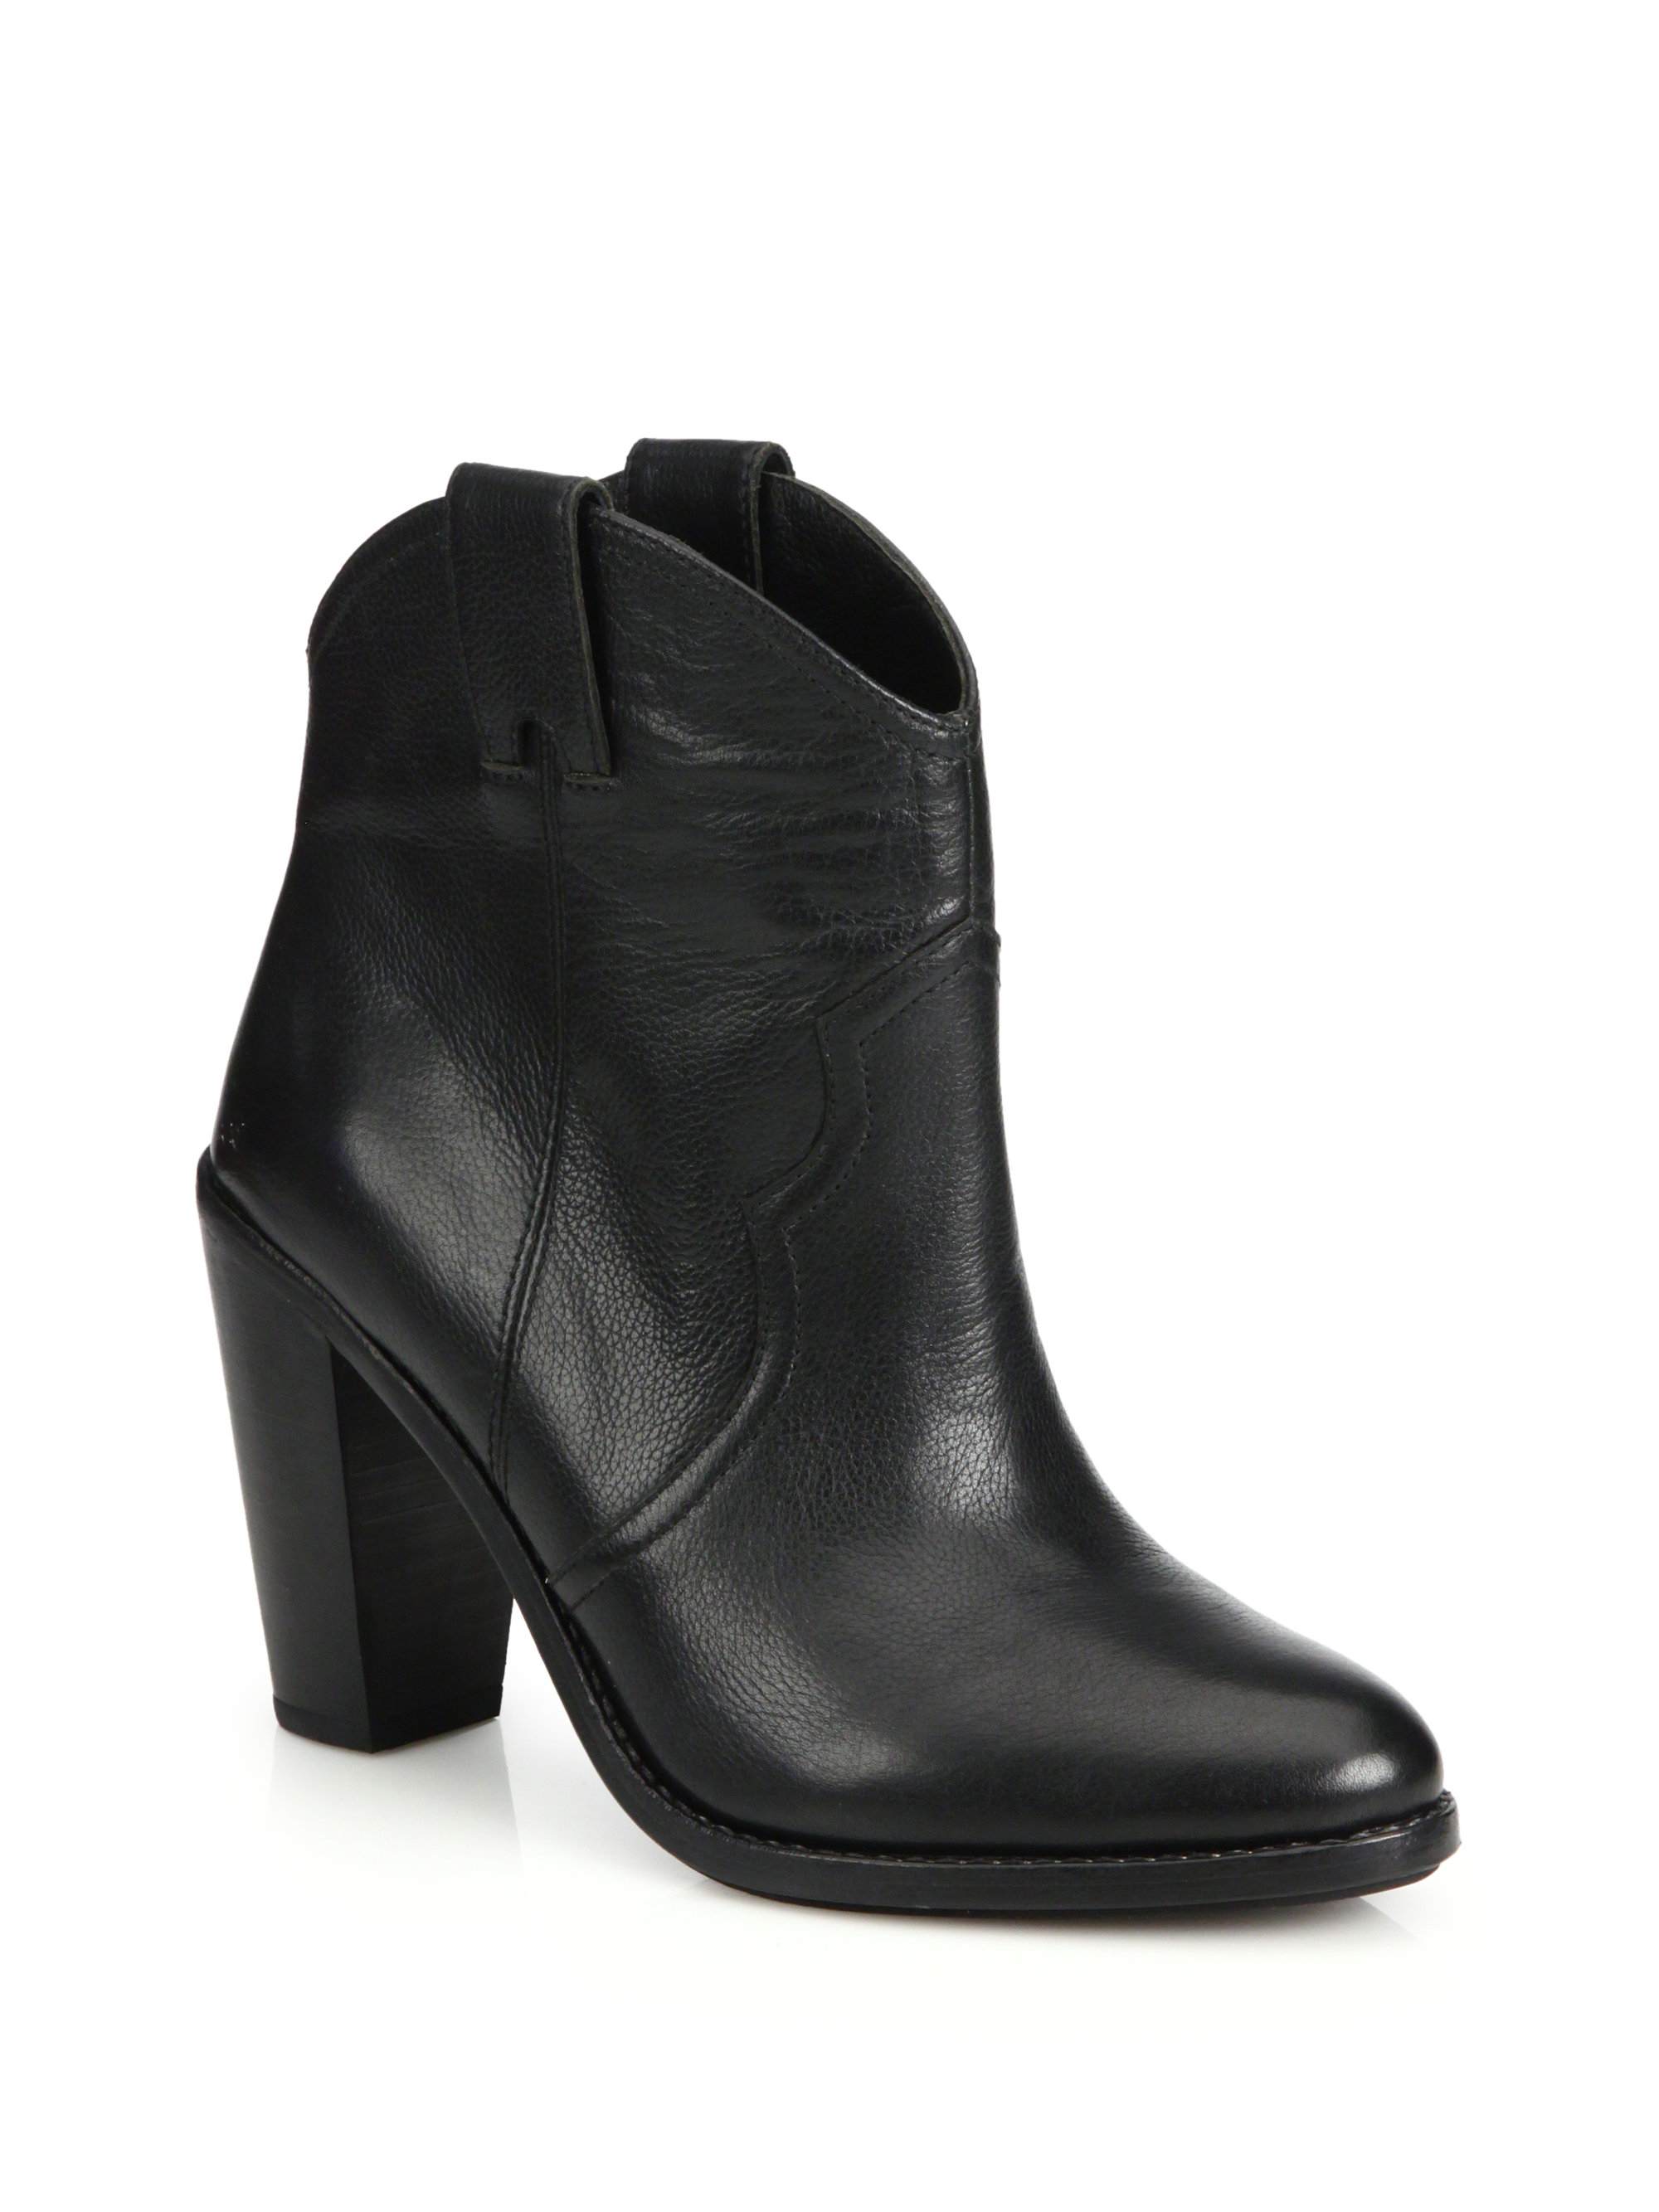 Free shipping on women's booties at hereufilbk.gq Shop all types of ankle boots, chelsea boots, and short boots for women from the best brands including Steve Madden, Sam Edelman, Vince Camuto and more. Totally free shipping & returns.